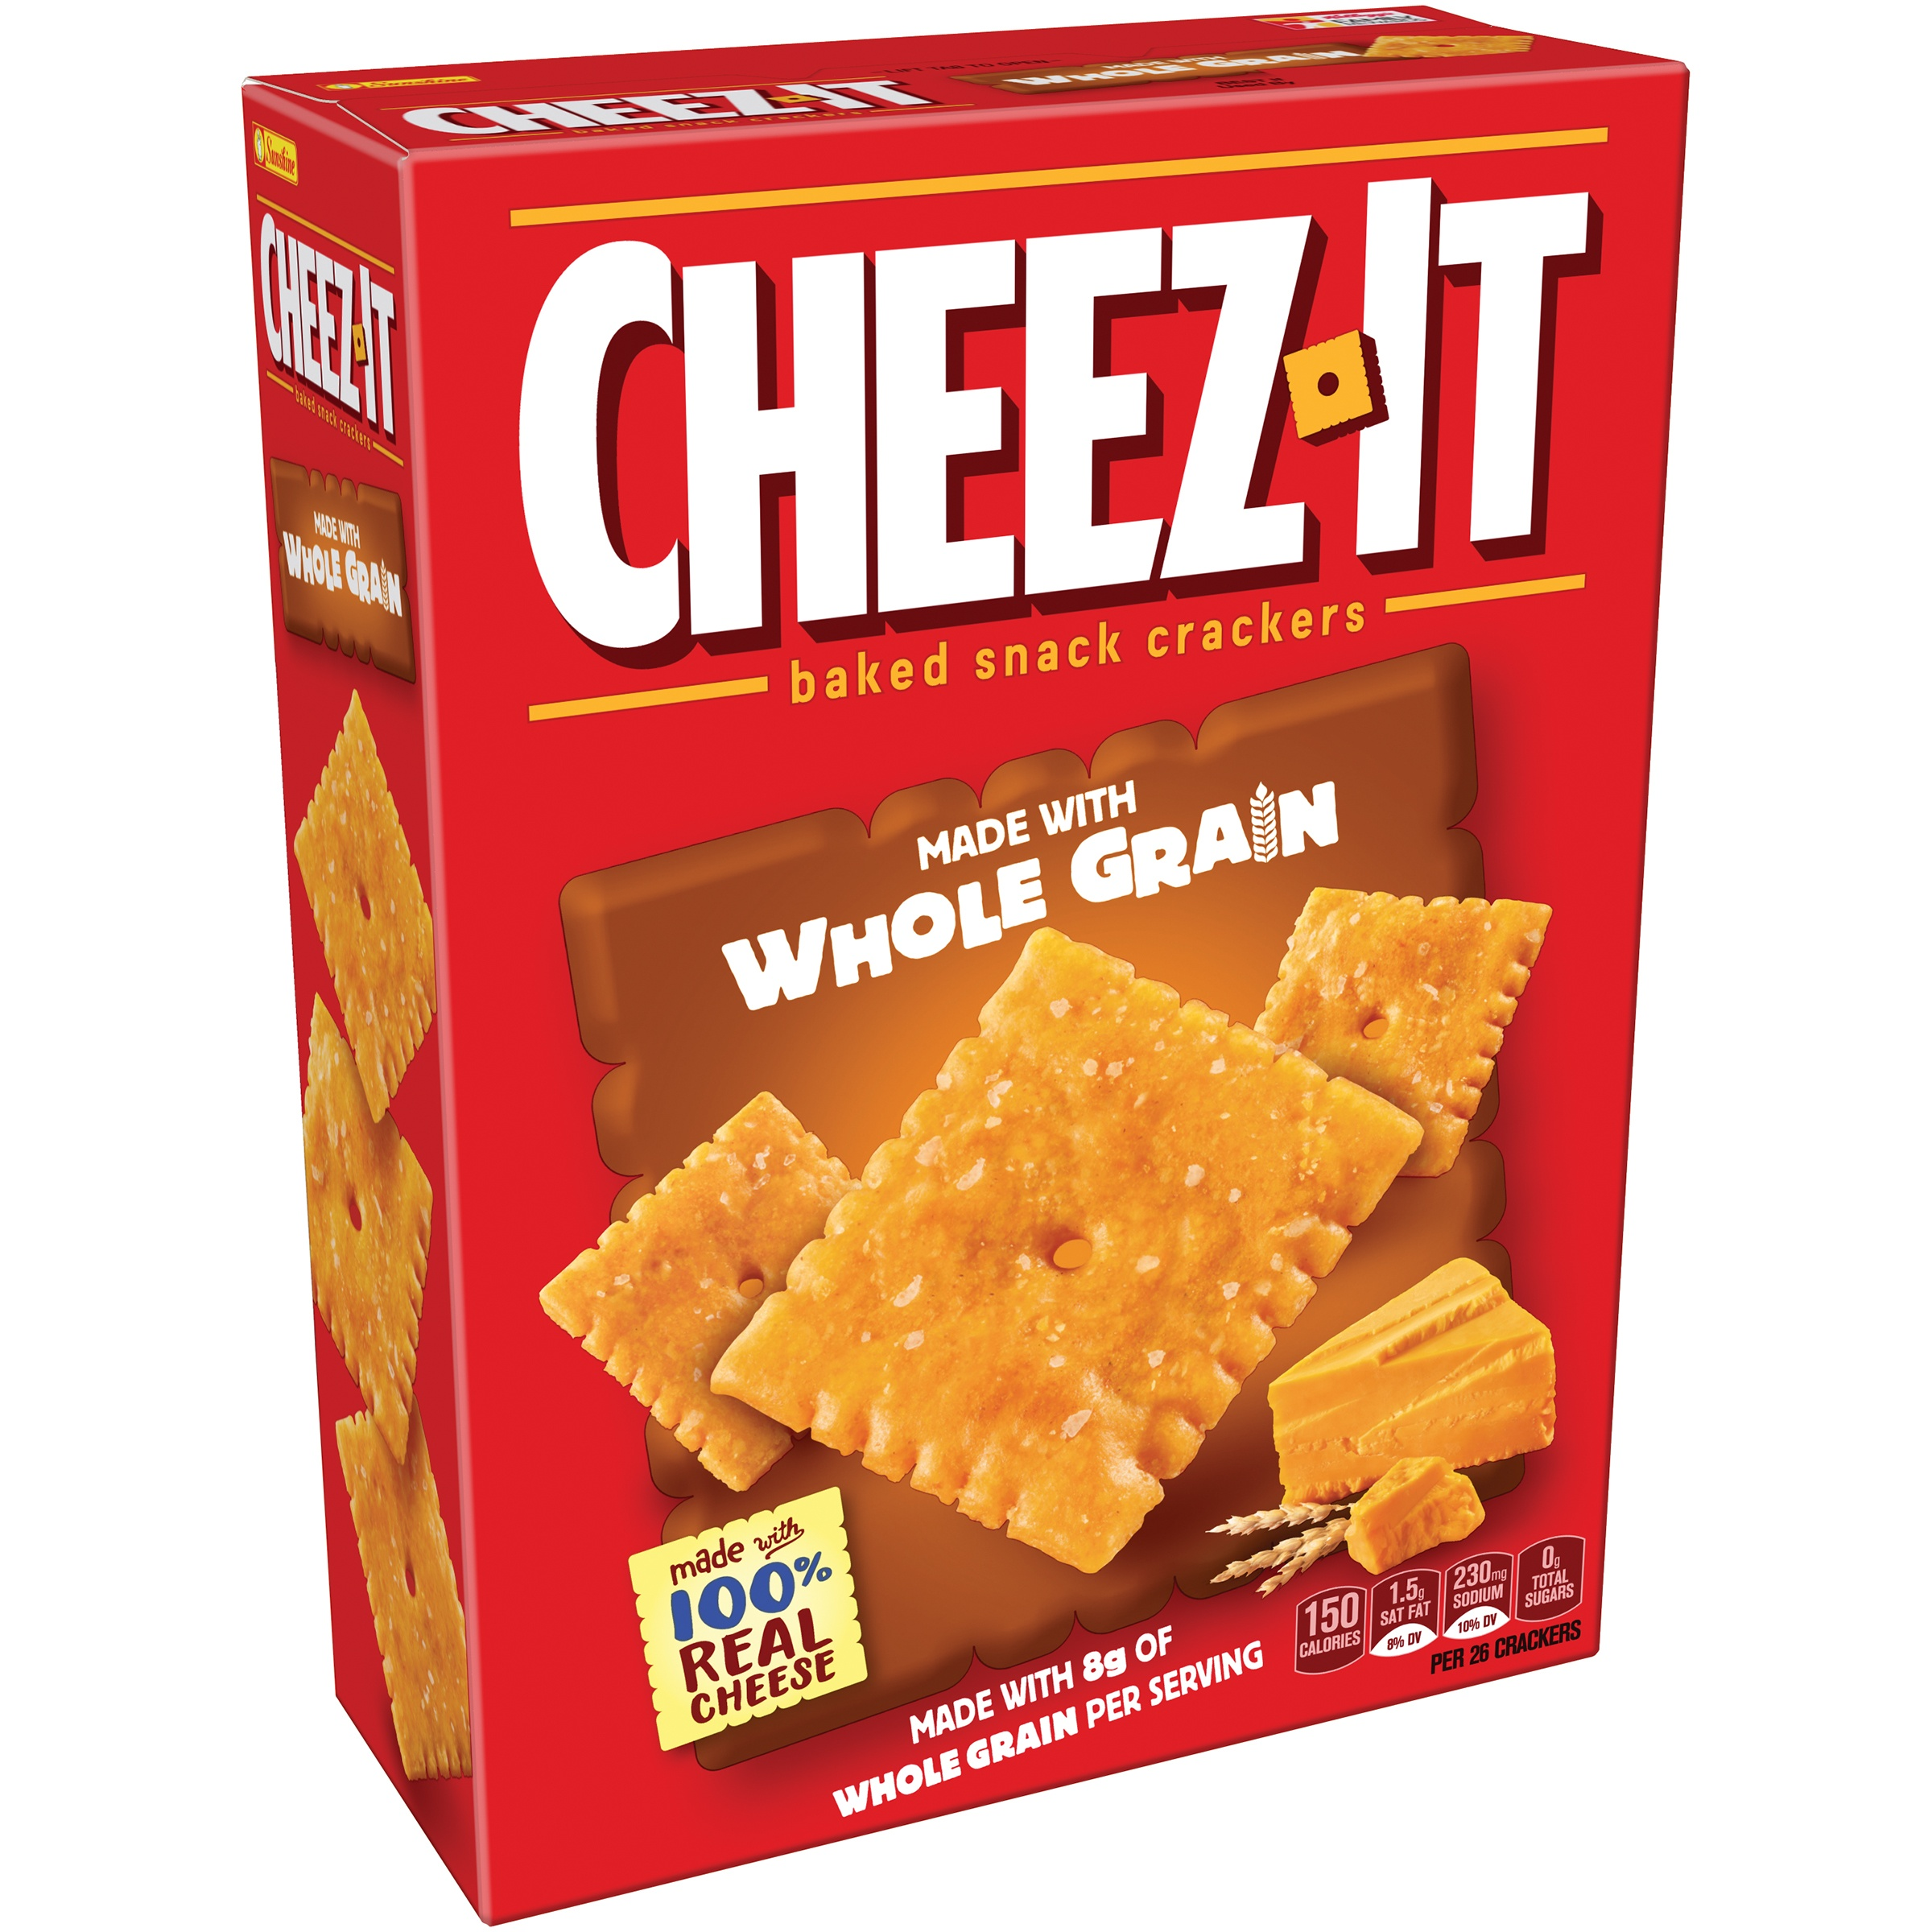 (2 Pack) Cheez-it Baked Snack Cheese Crackers, Whole Grain, 12.4 oz